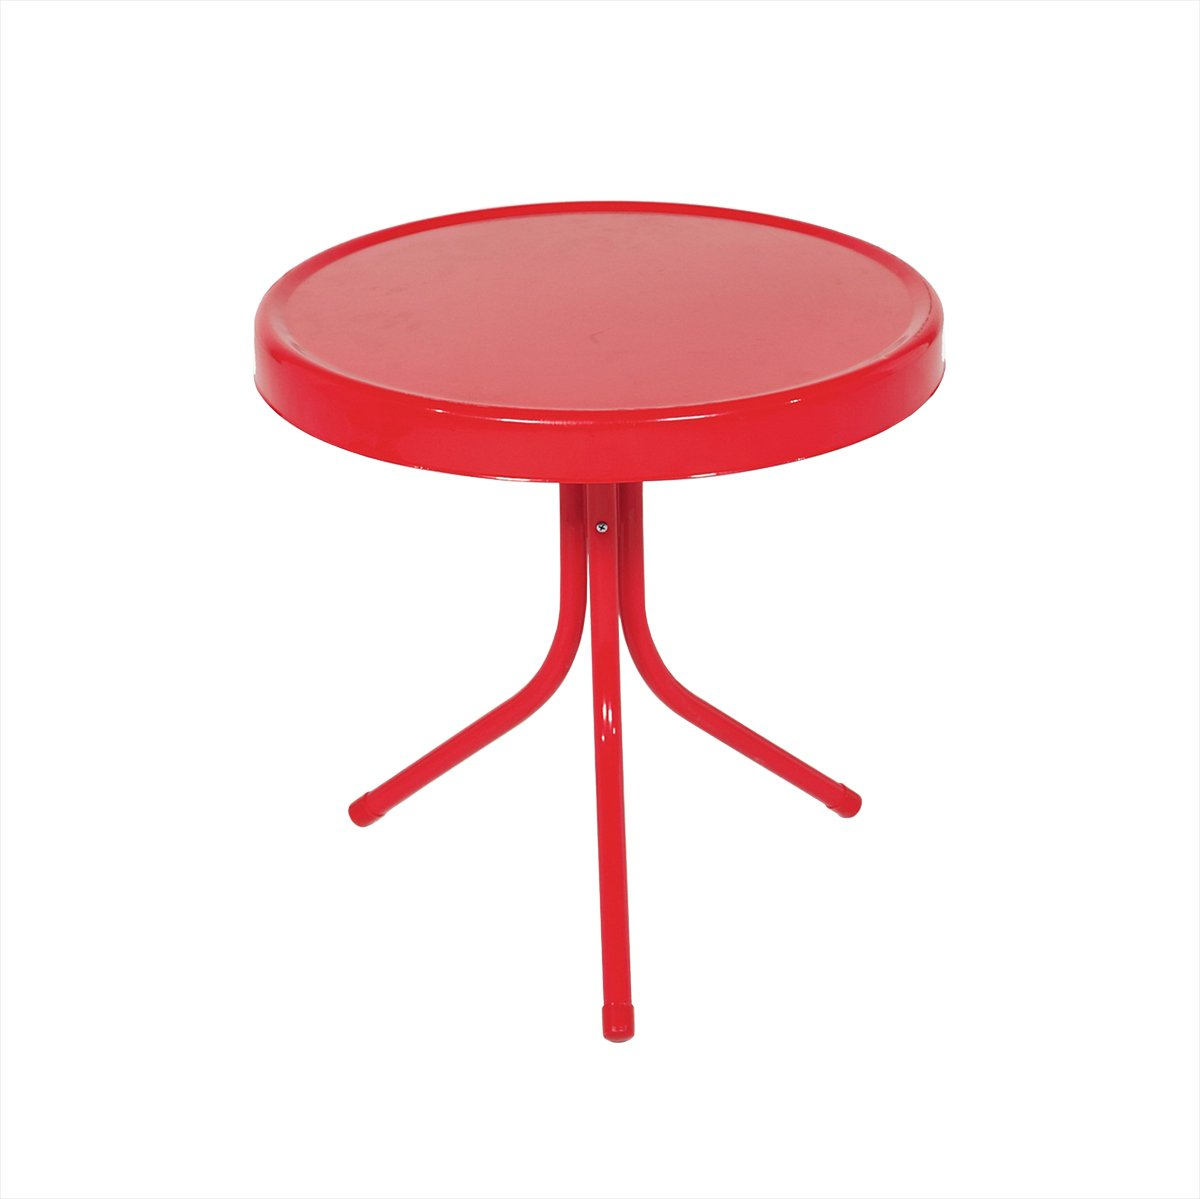 LB International 21.75 Red Outdoor Retro Metal Tulip Side Table